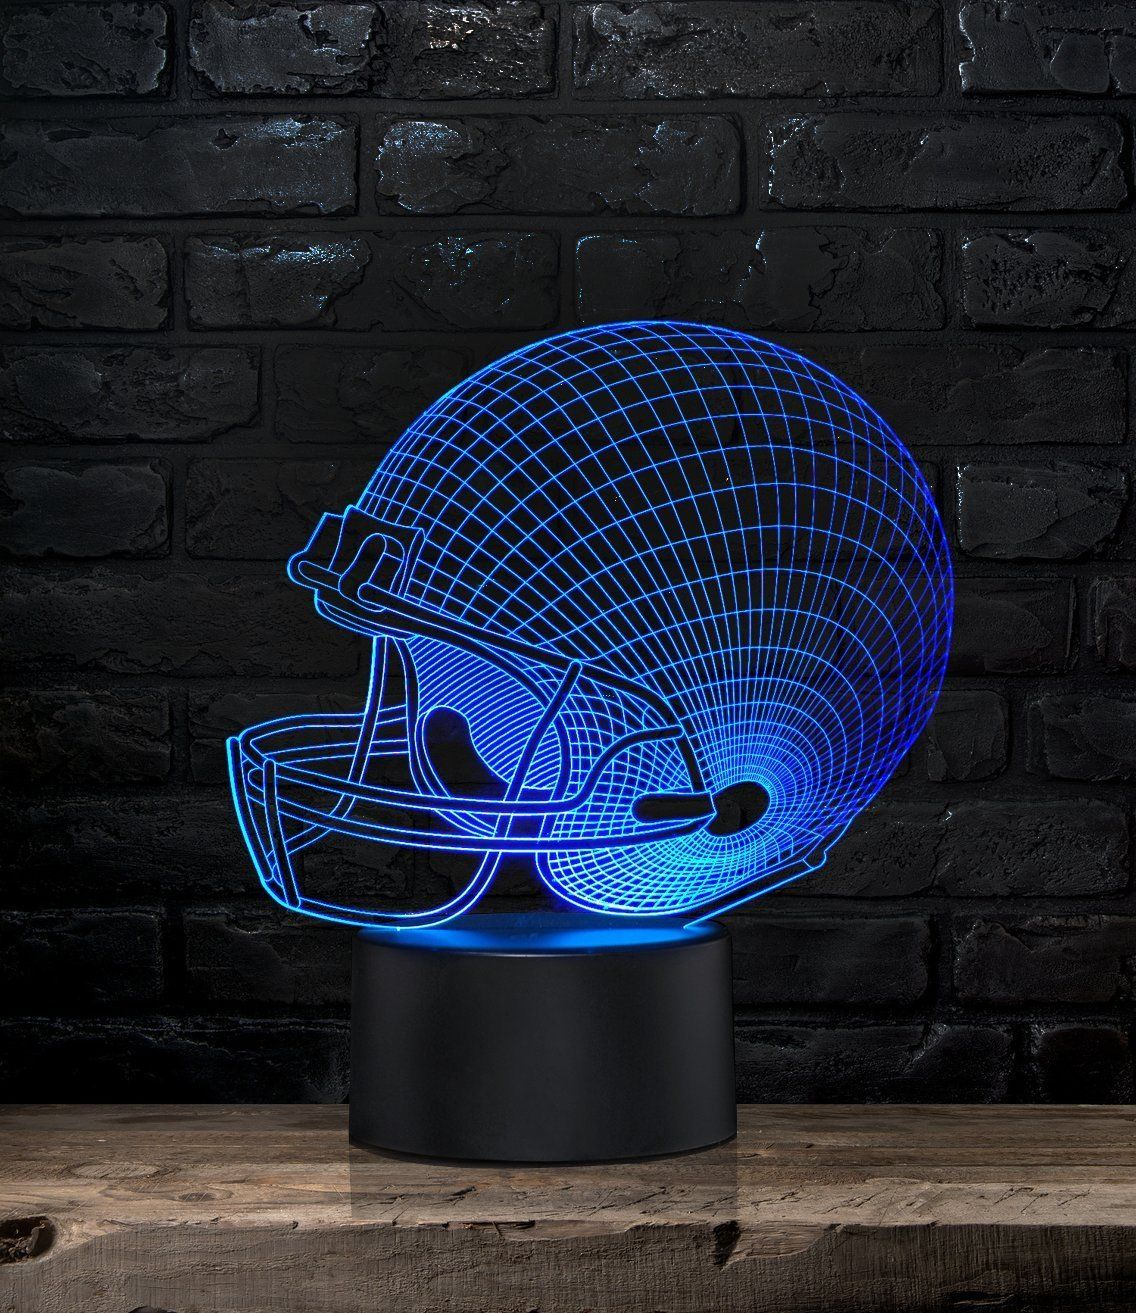 Night Light Nightlight Light Nightlight Football Helmet Night Light 7 Colors 3D Effect Led Light Does Not Get Hot